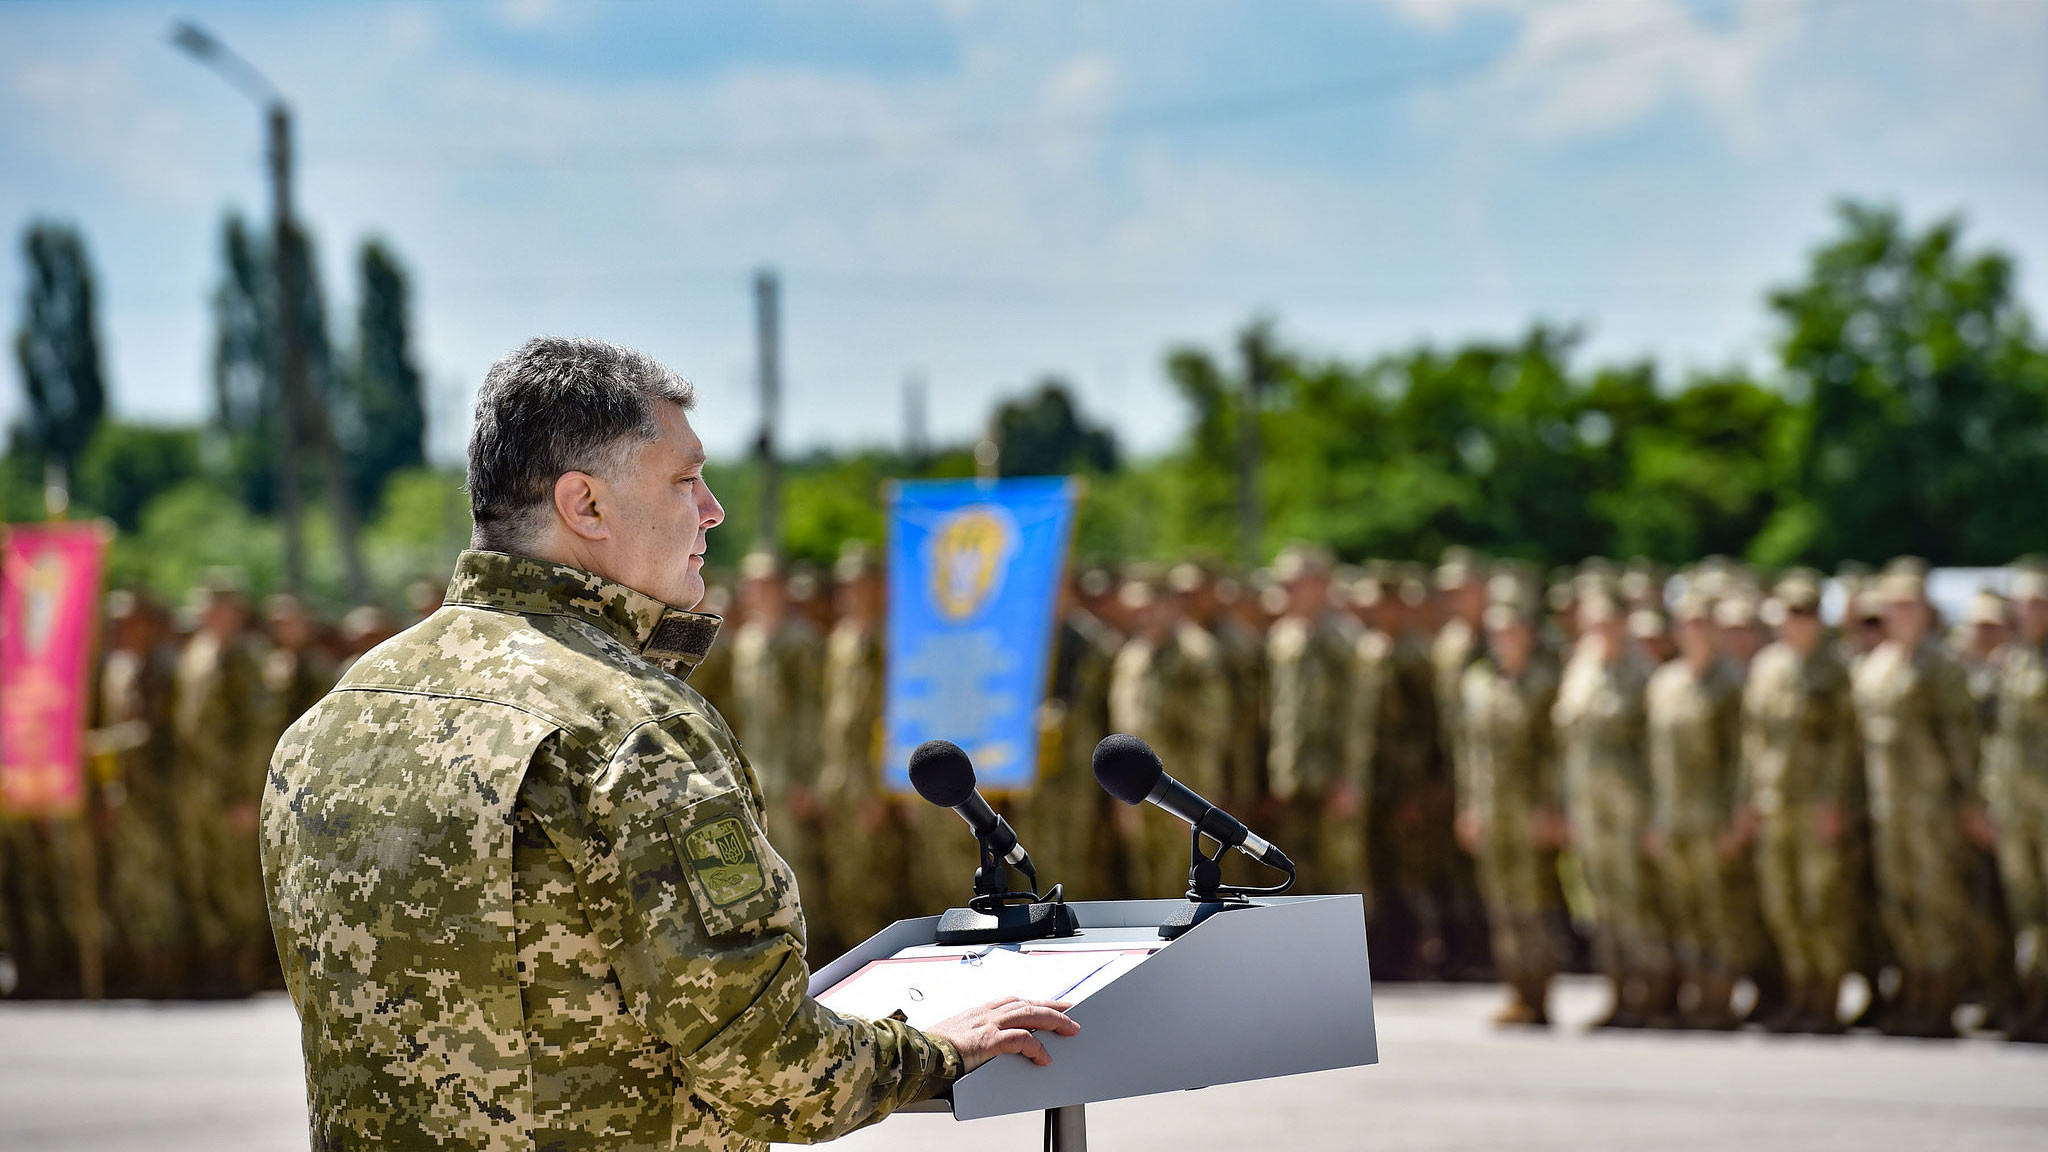 """<p><span>Фото: &copy;</span> <span>Flickr/<a href=""""https://www.flickr.com/photos/ministryofdefenceua/27774788052/"""">Ministry of Defense of Ukraine</a></span></p>"""